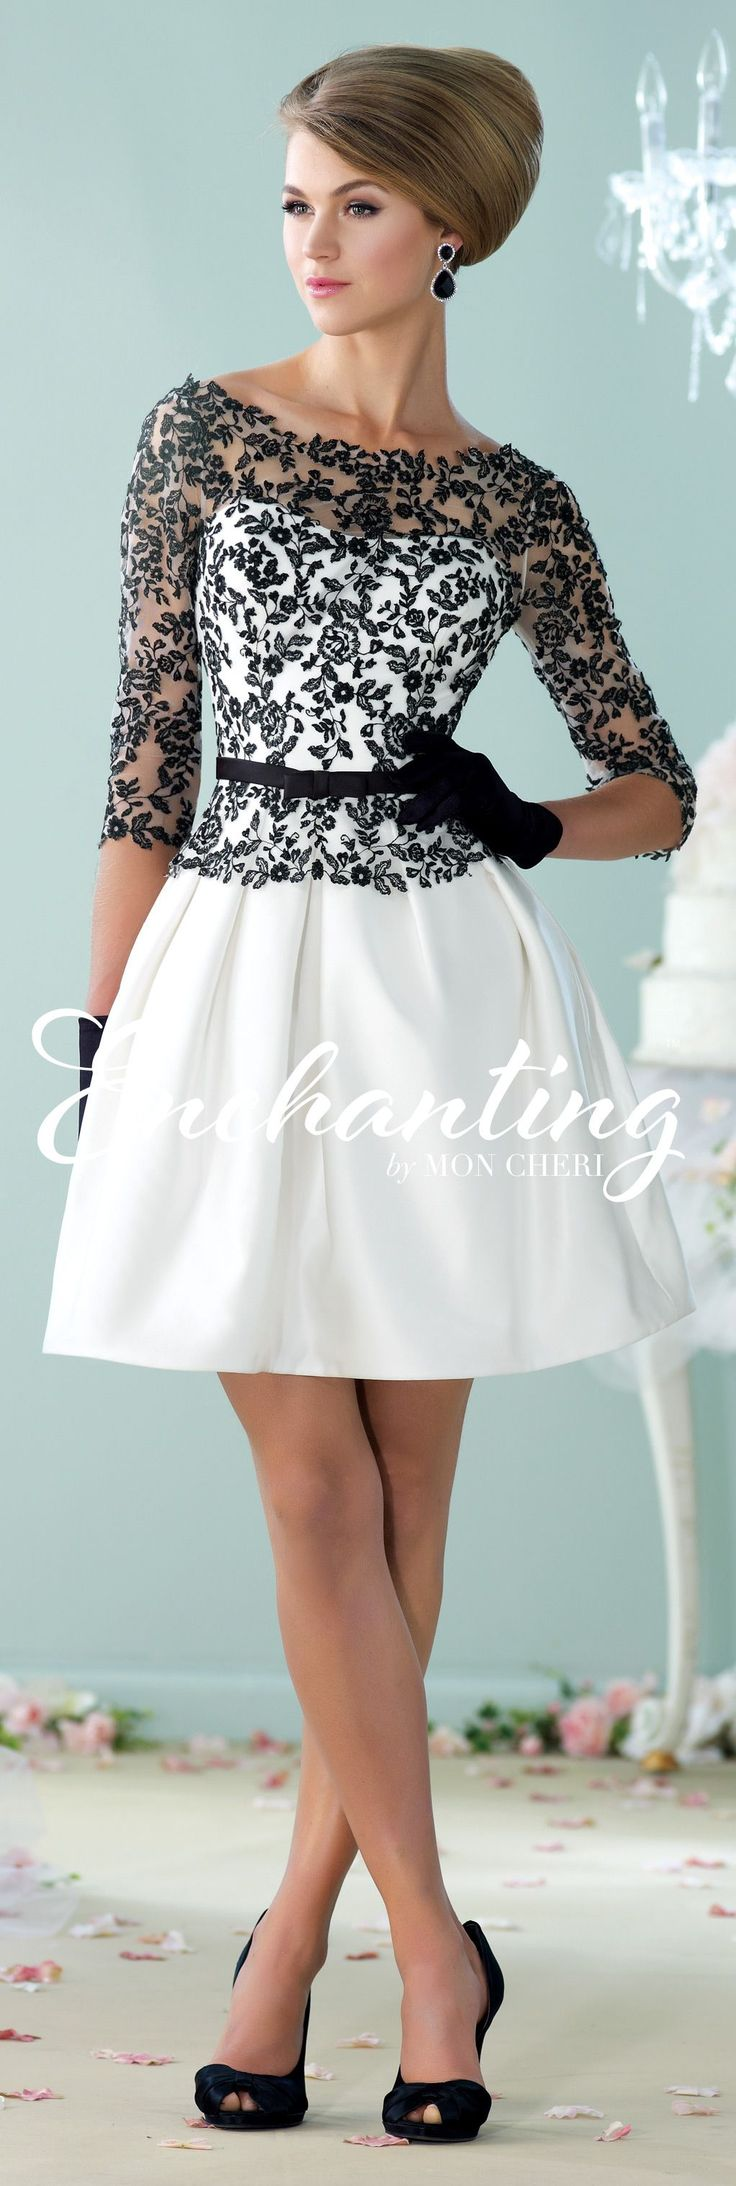 Enchanting by Mon Cheri - The Premiere Collection ~Style No. 215102…